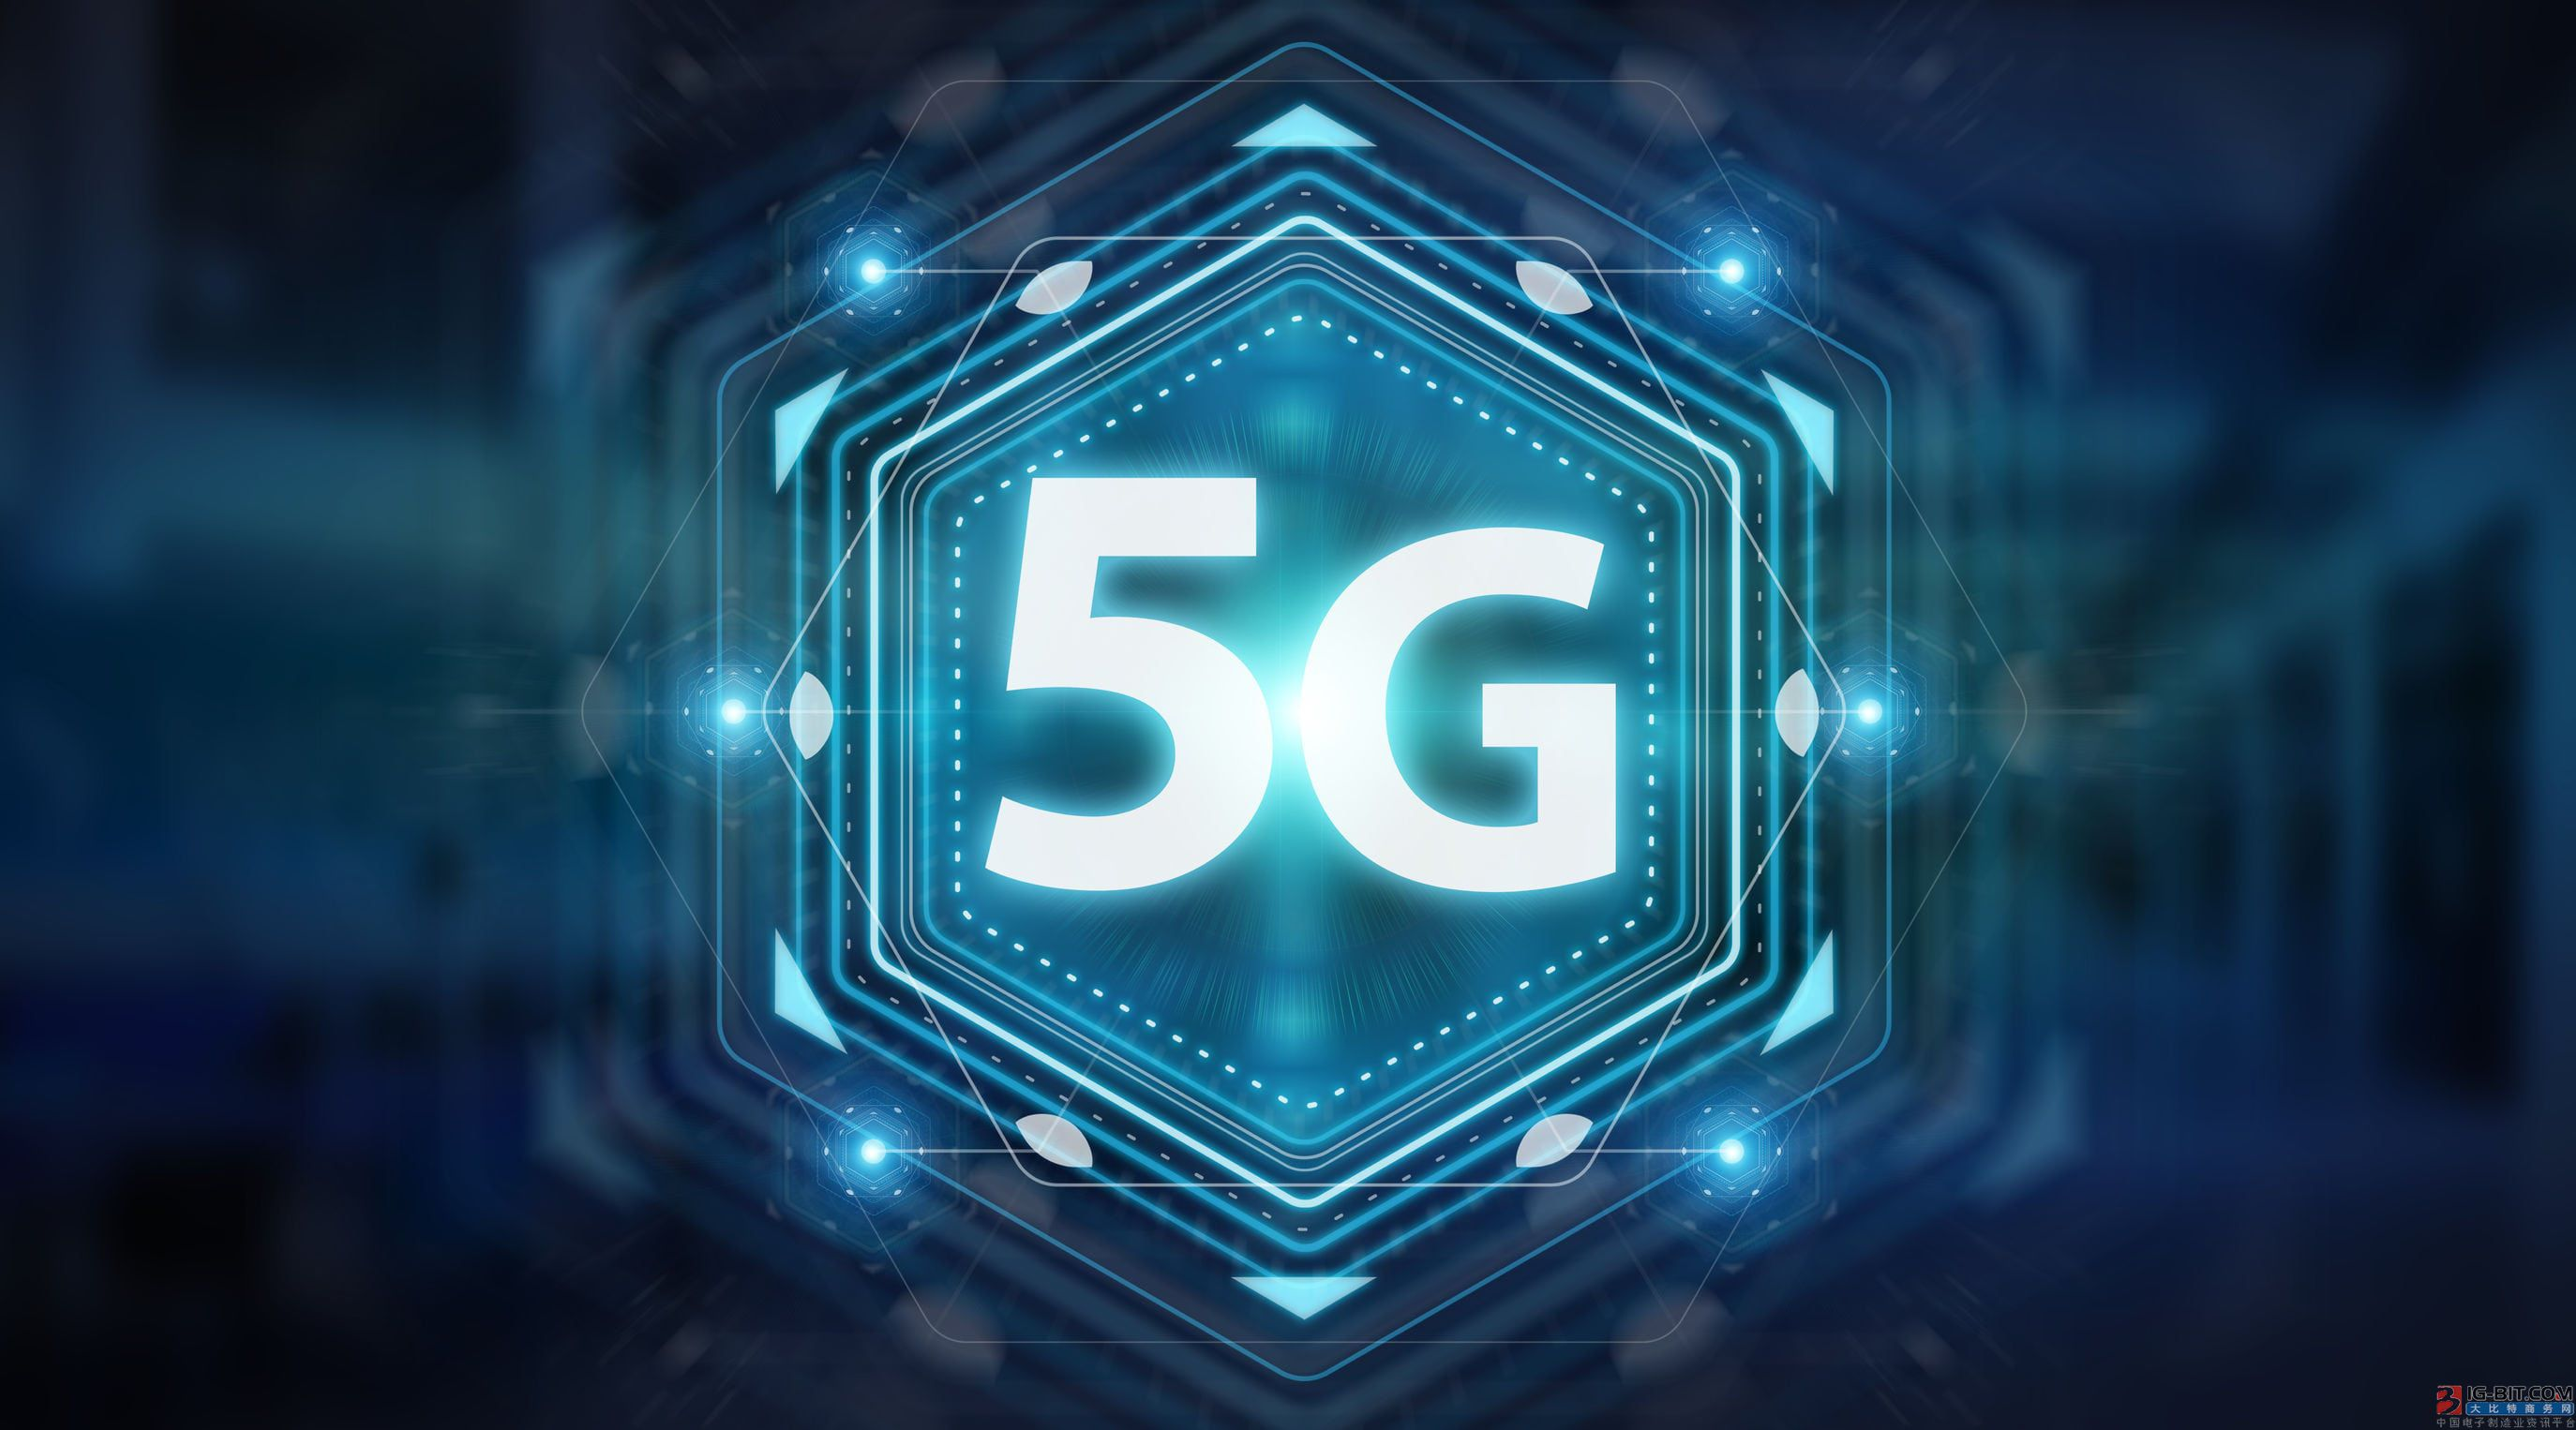 With the help of 5G, cyber security ushered in opportunities and encountered great challenges